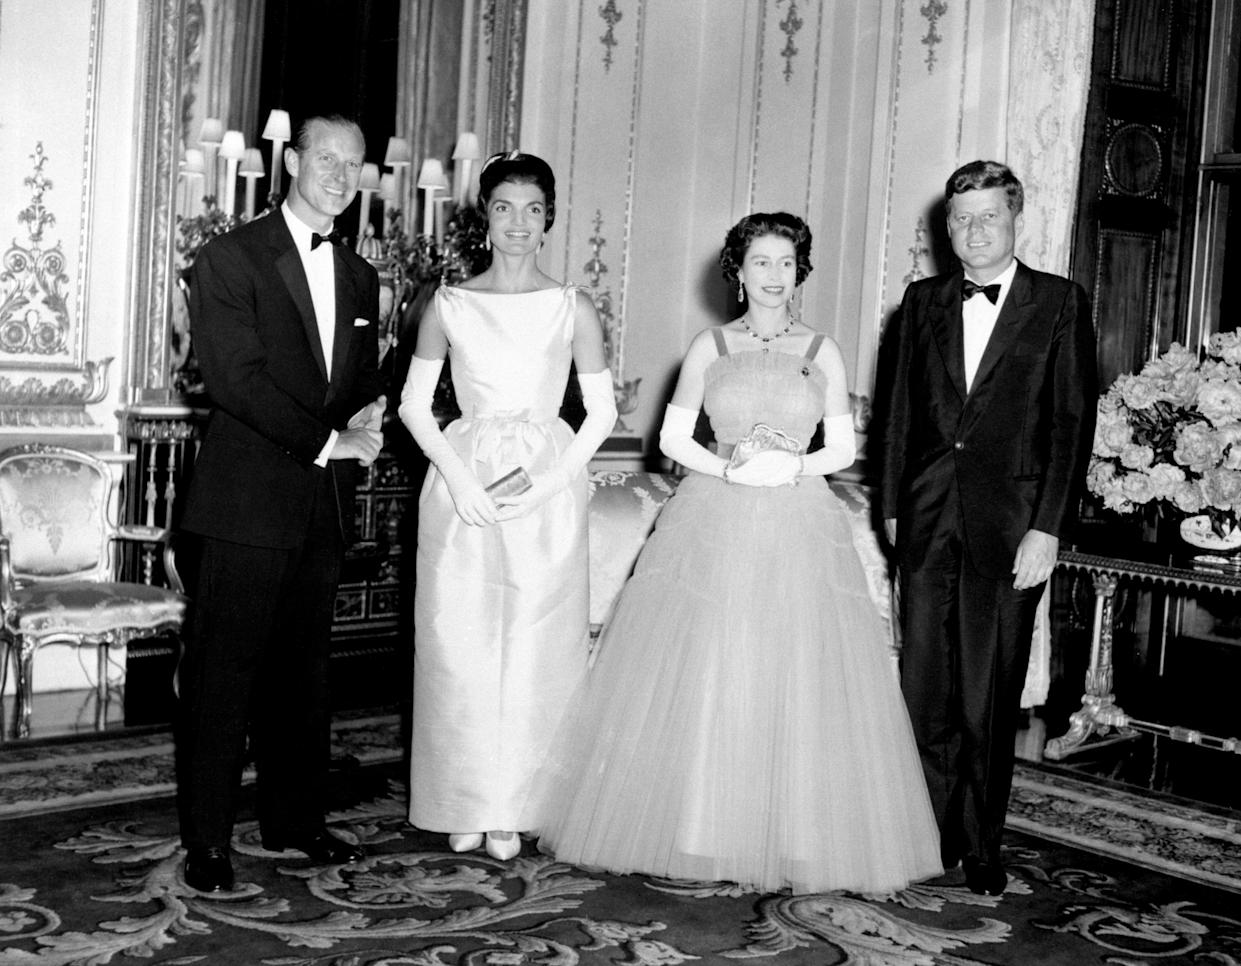 American President John Kennedy (right) and his wife Jacqueline (2nd left) pictured with Queen Elizabeth II (2nd right) and the Duke of Edinburgh at Buckingham Palace, in London.